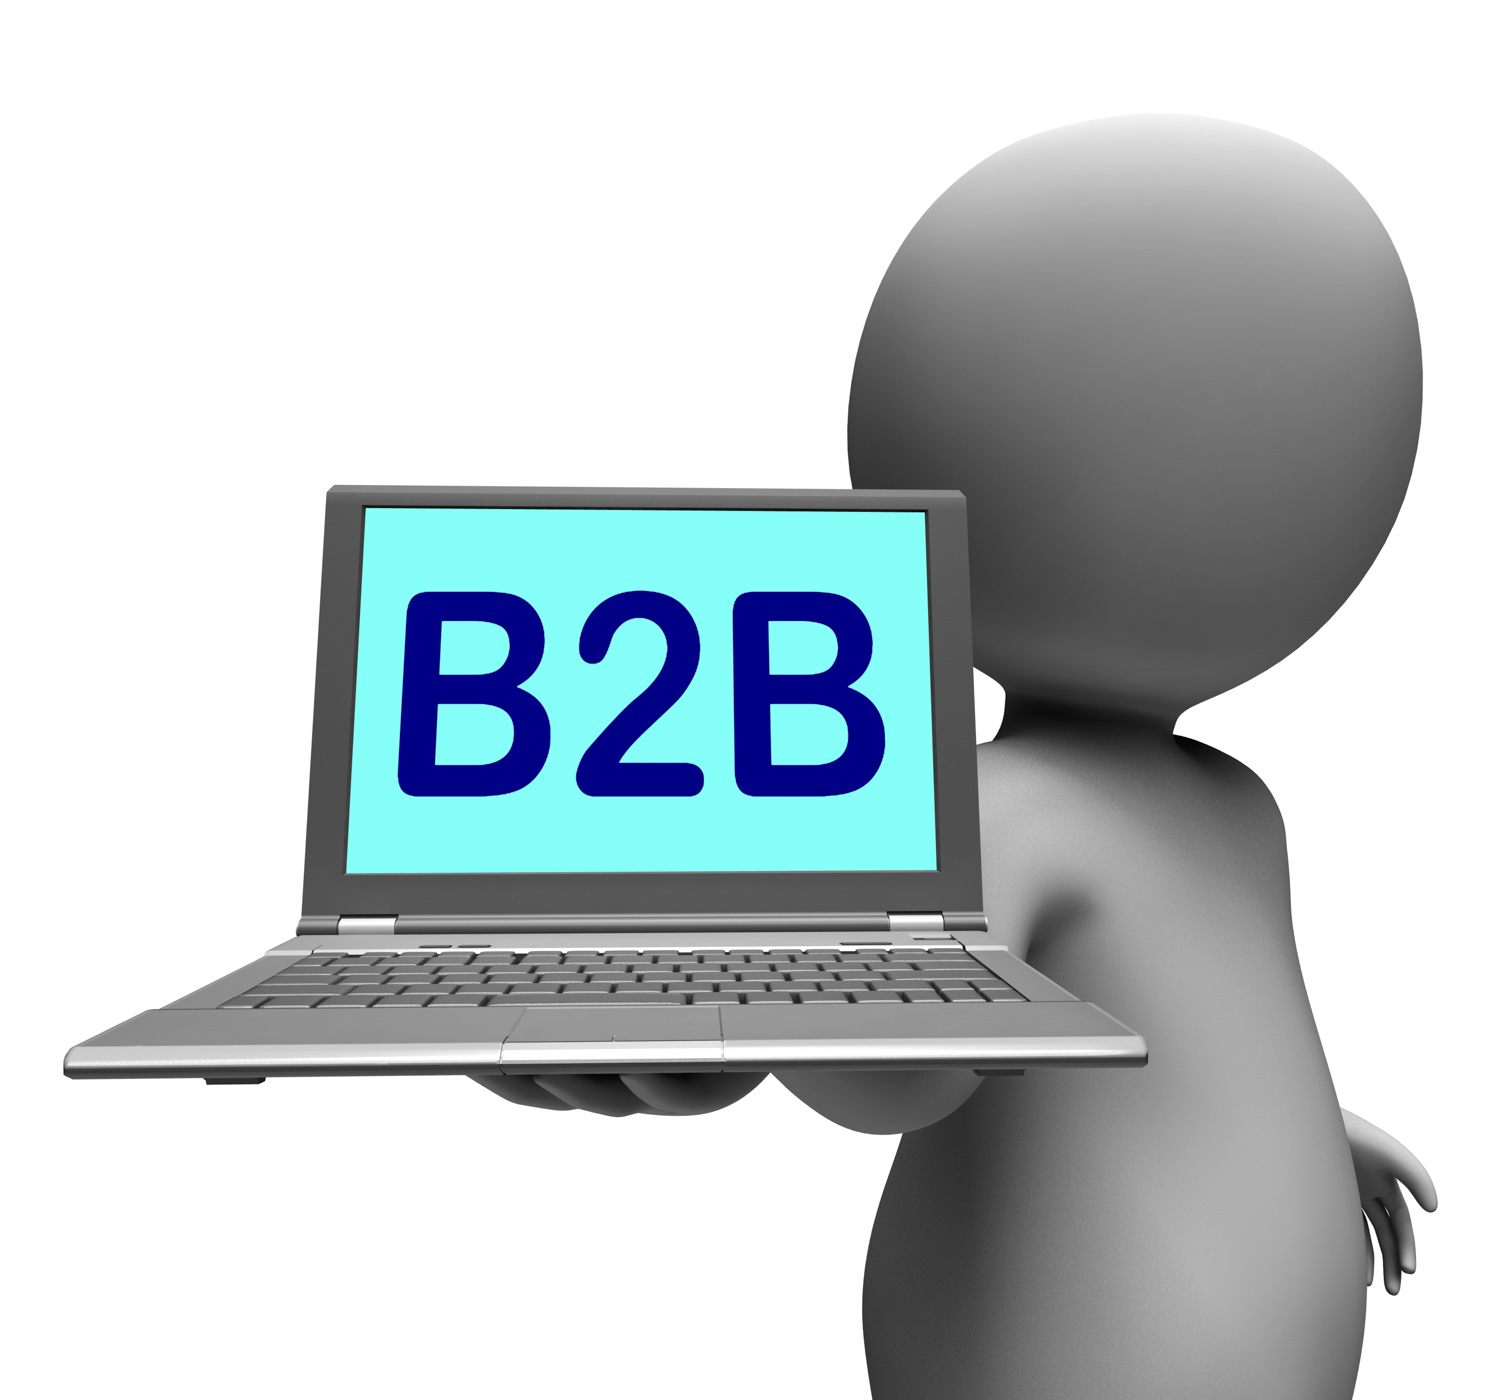 B2b laptop character shows business trading and commerce online photo